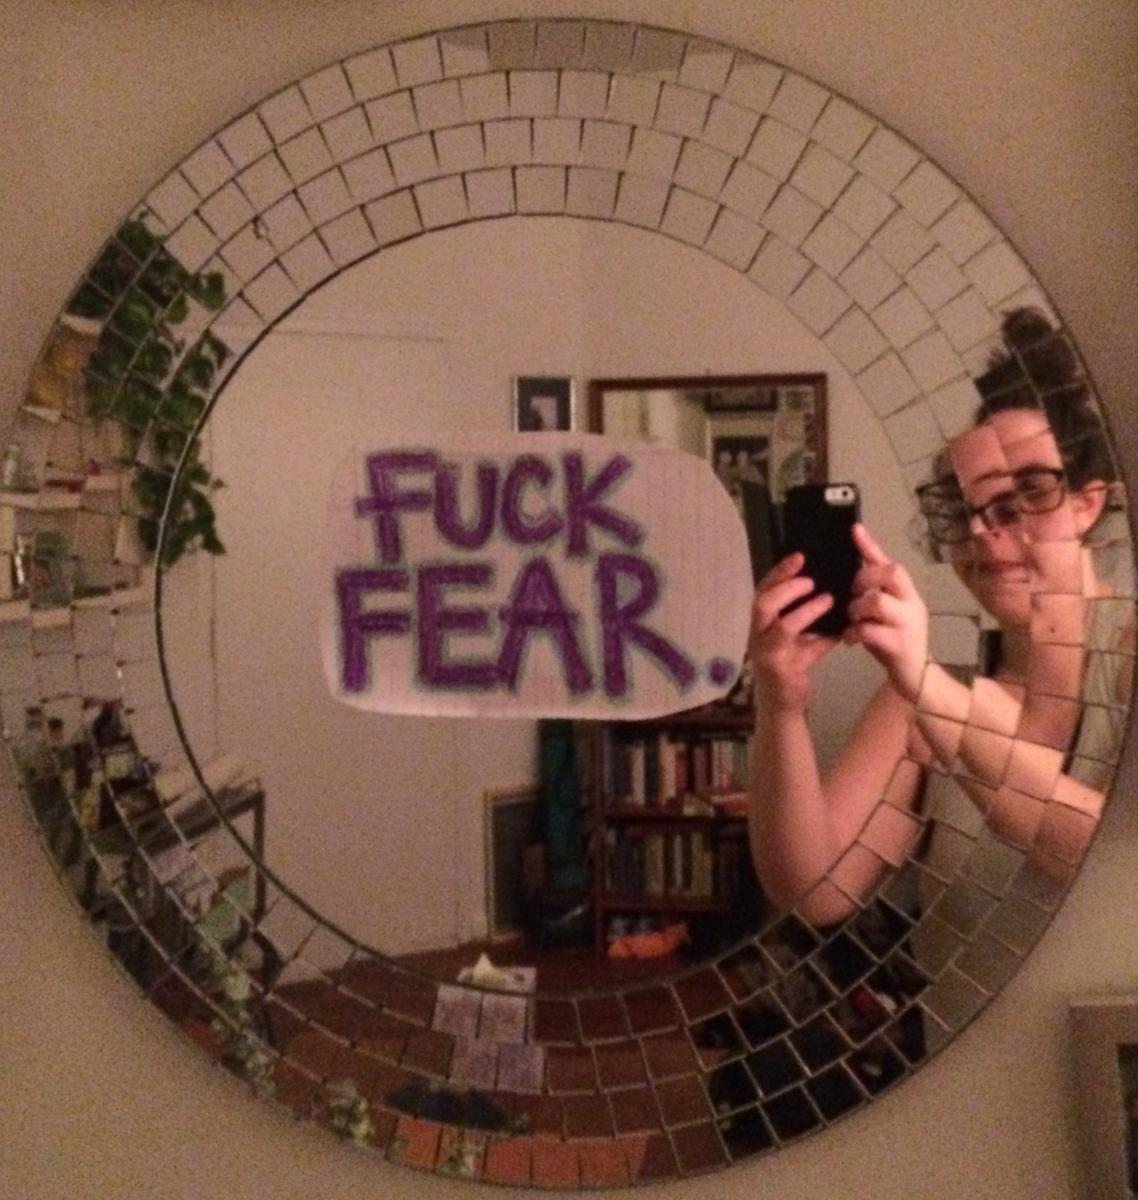 mirror that says 'fuck fear'